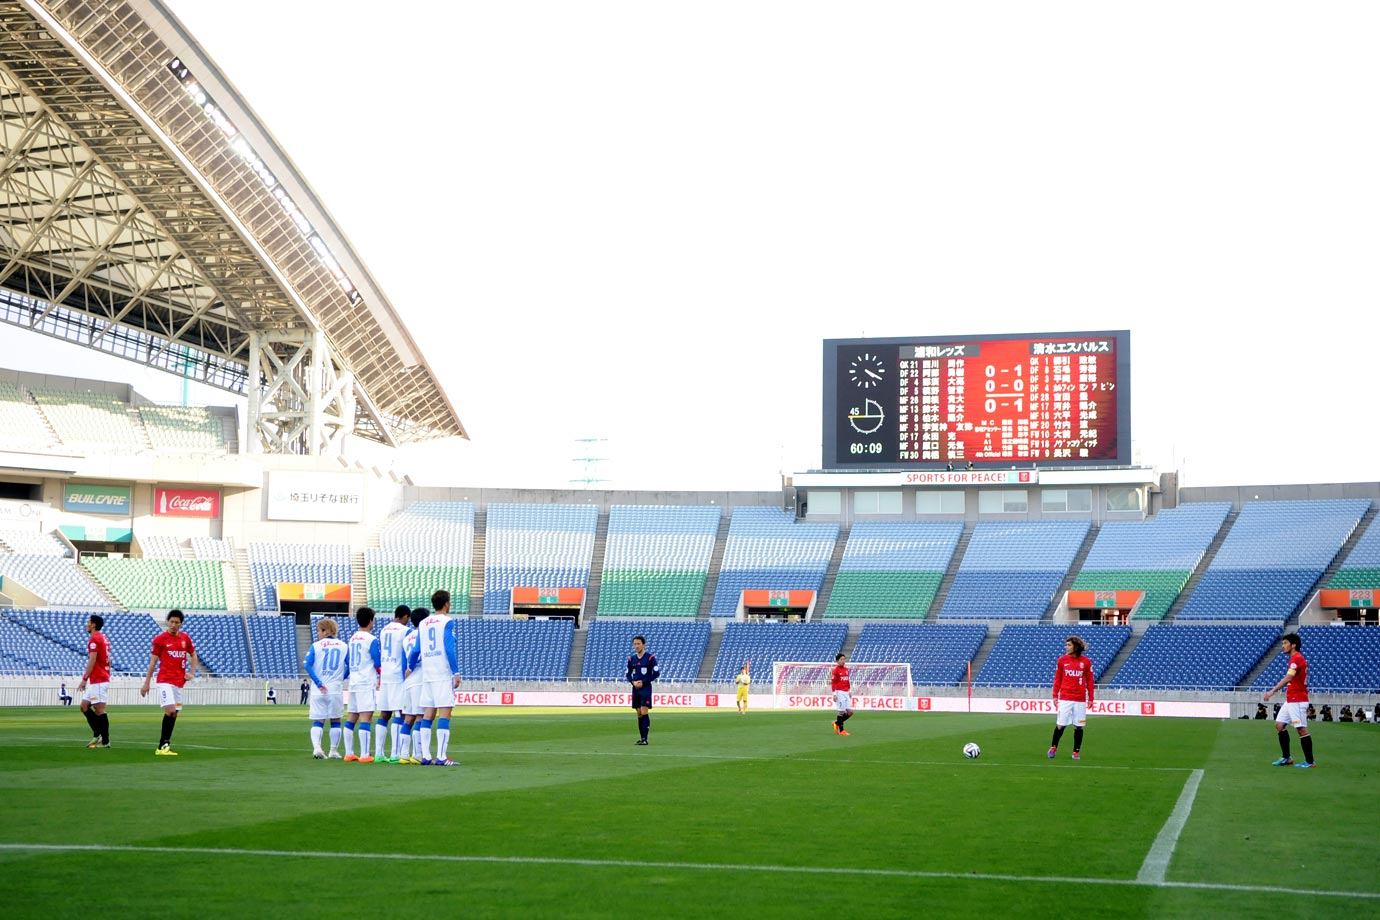 """Officials ordered one of the top teams in Japan's professional J-League, the Urawa Reds, to play in an empty Saitama Stadium as punishment for a """"Japanese only"""" banner that fans displayed during a game in Tokyo earlier in the month. Urawa and Shimizu played to a 1-1 tie."""